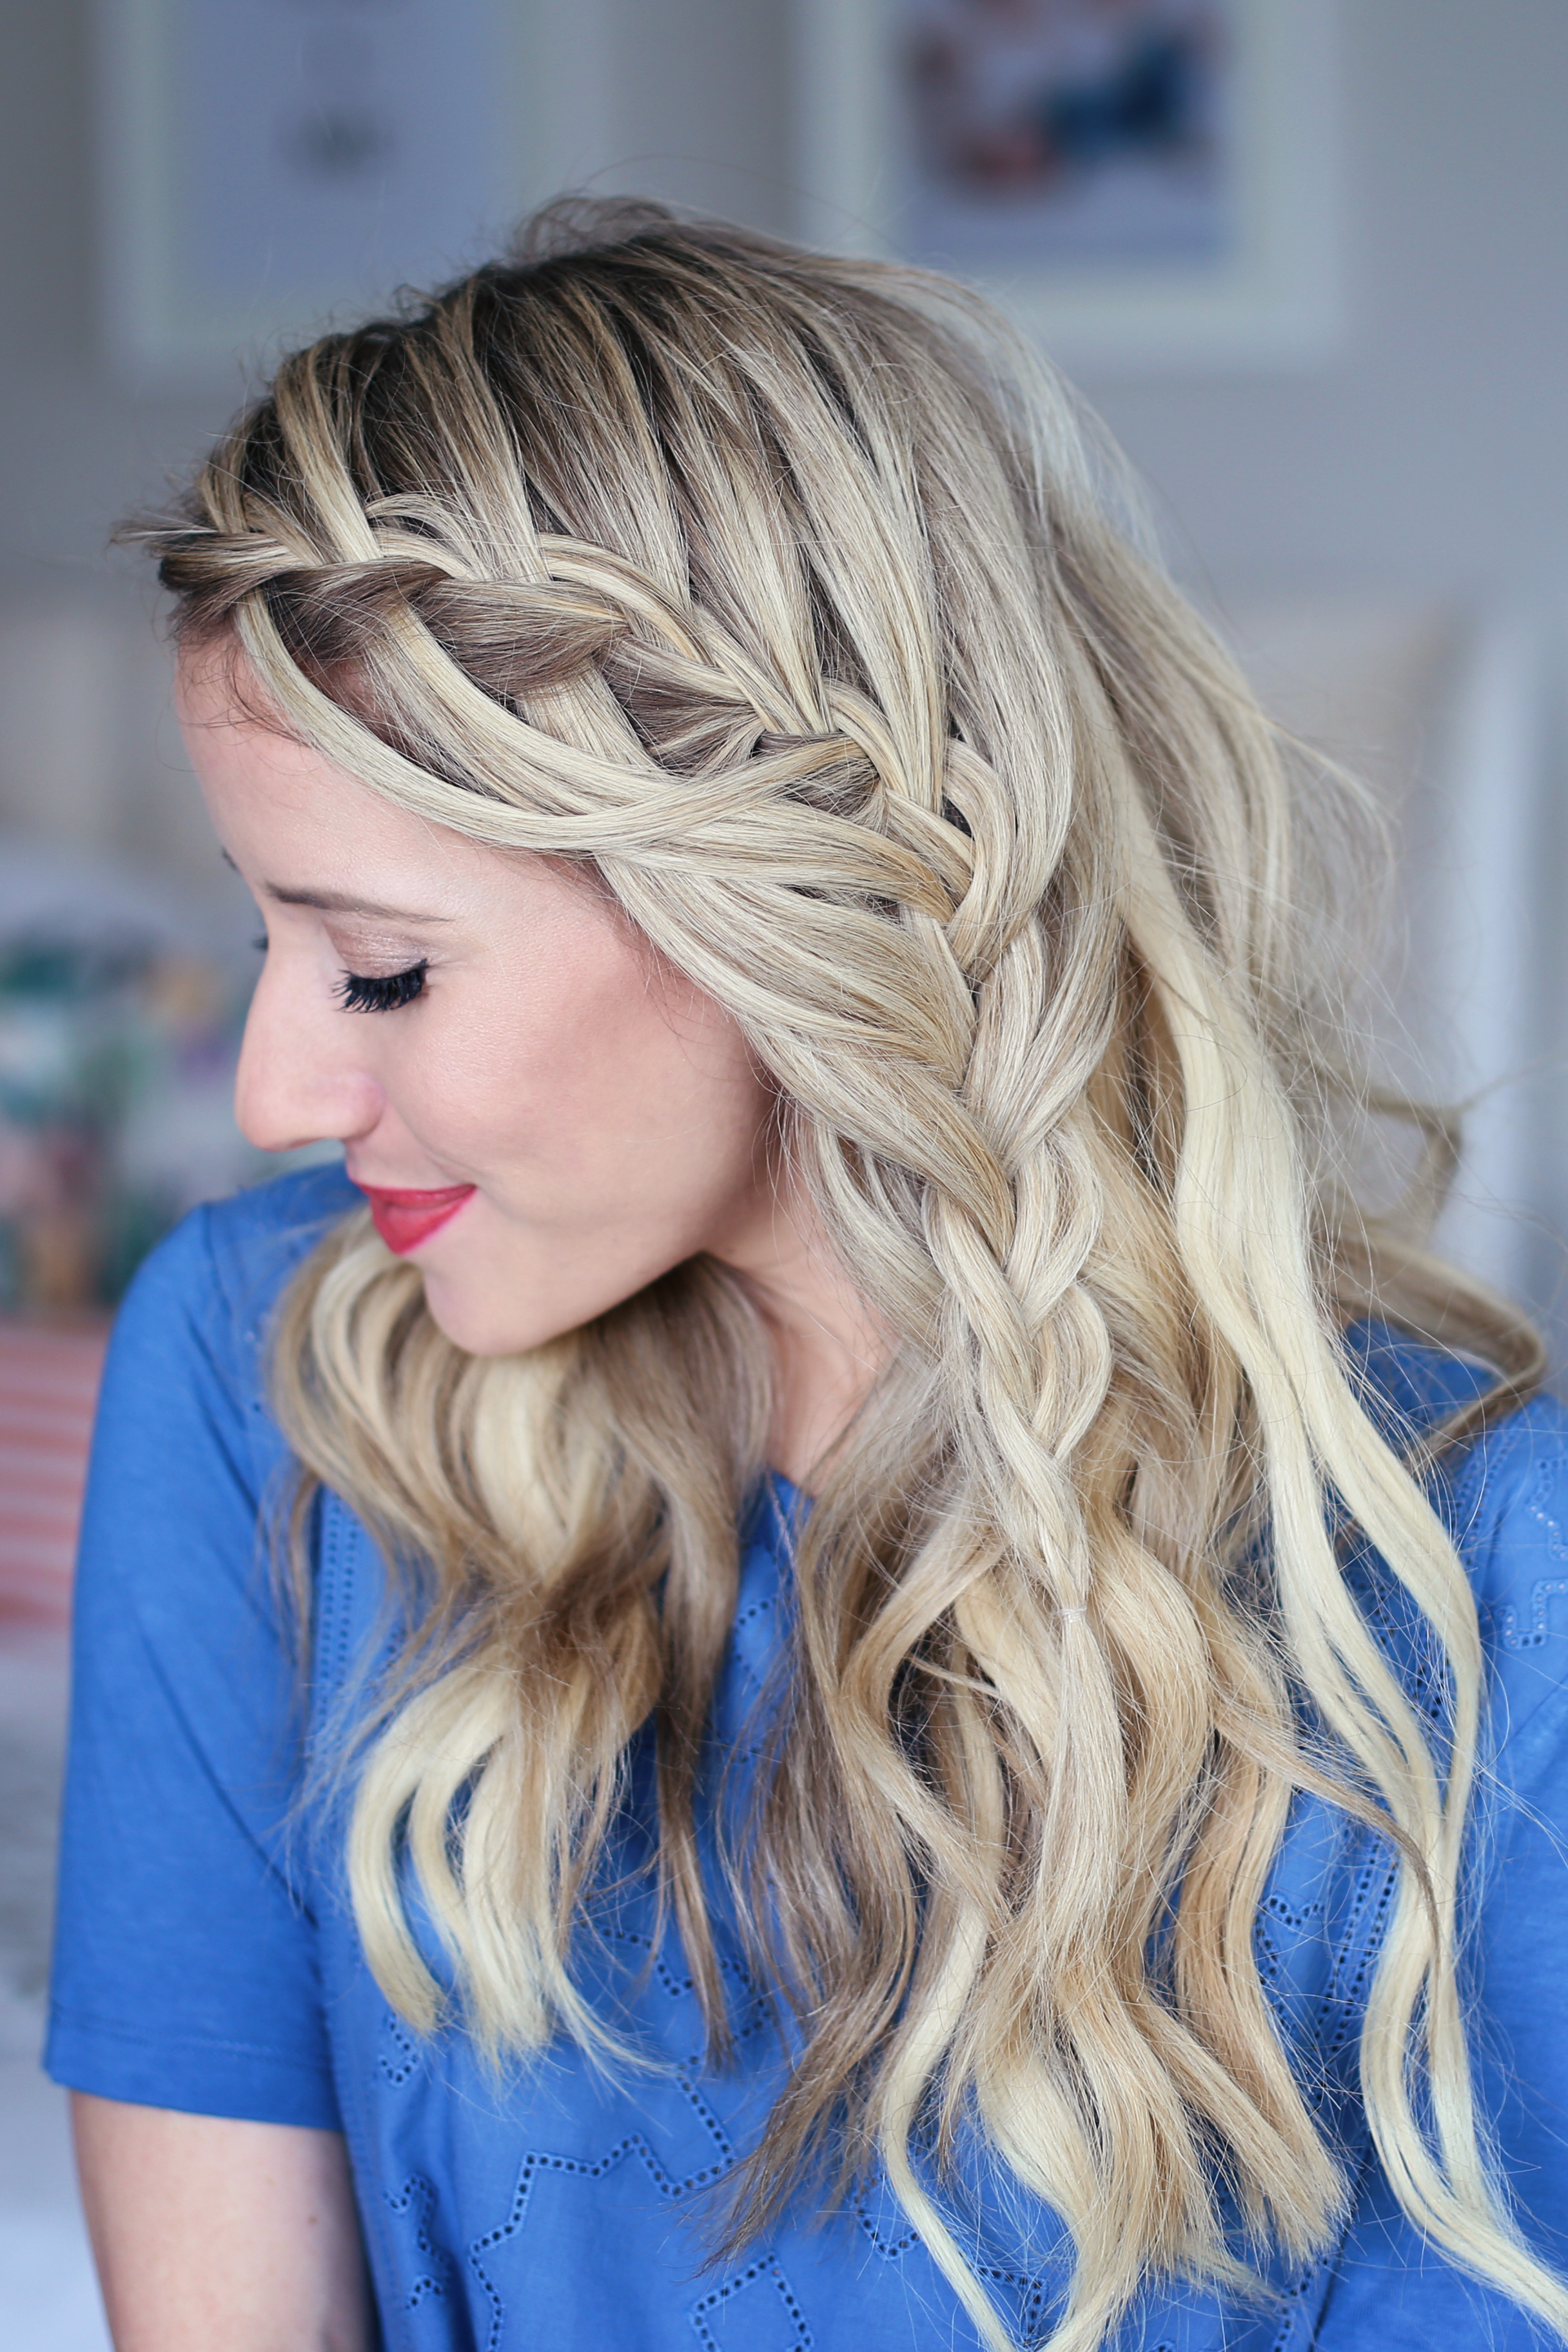 Best ideas about Cute Girls Haircuts . Save or Pin 3 in 1 Cascading Waterfall Build able Hairstyle Now.